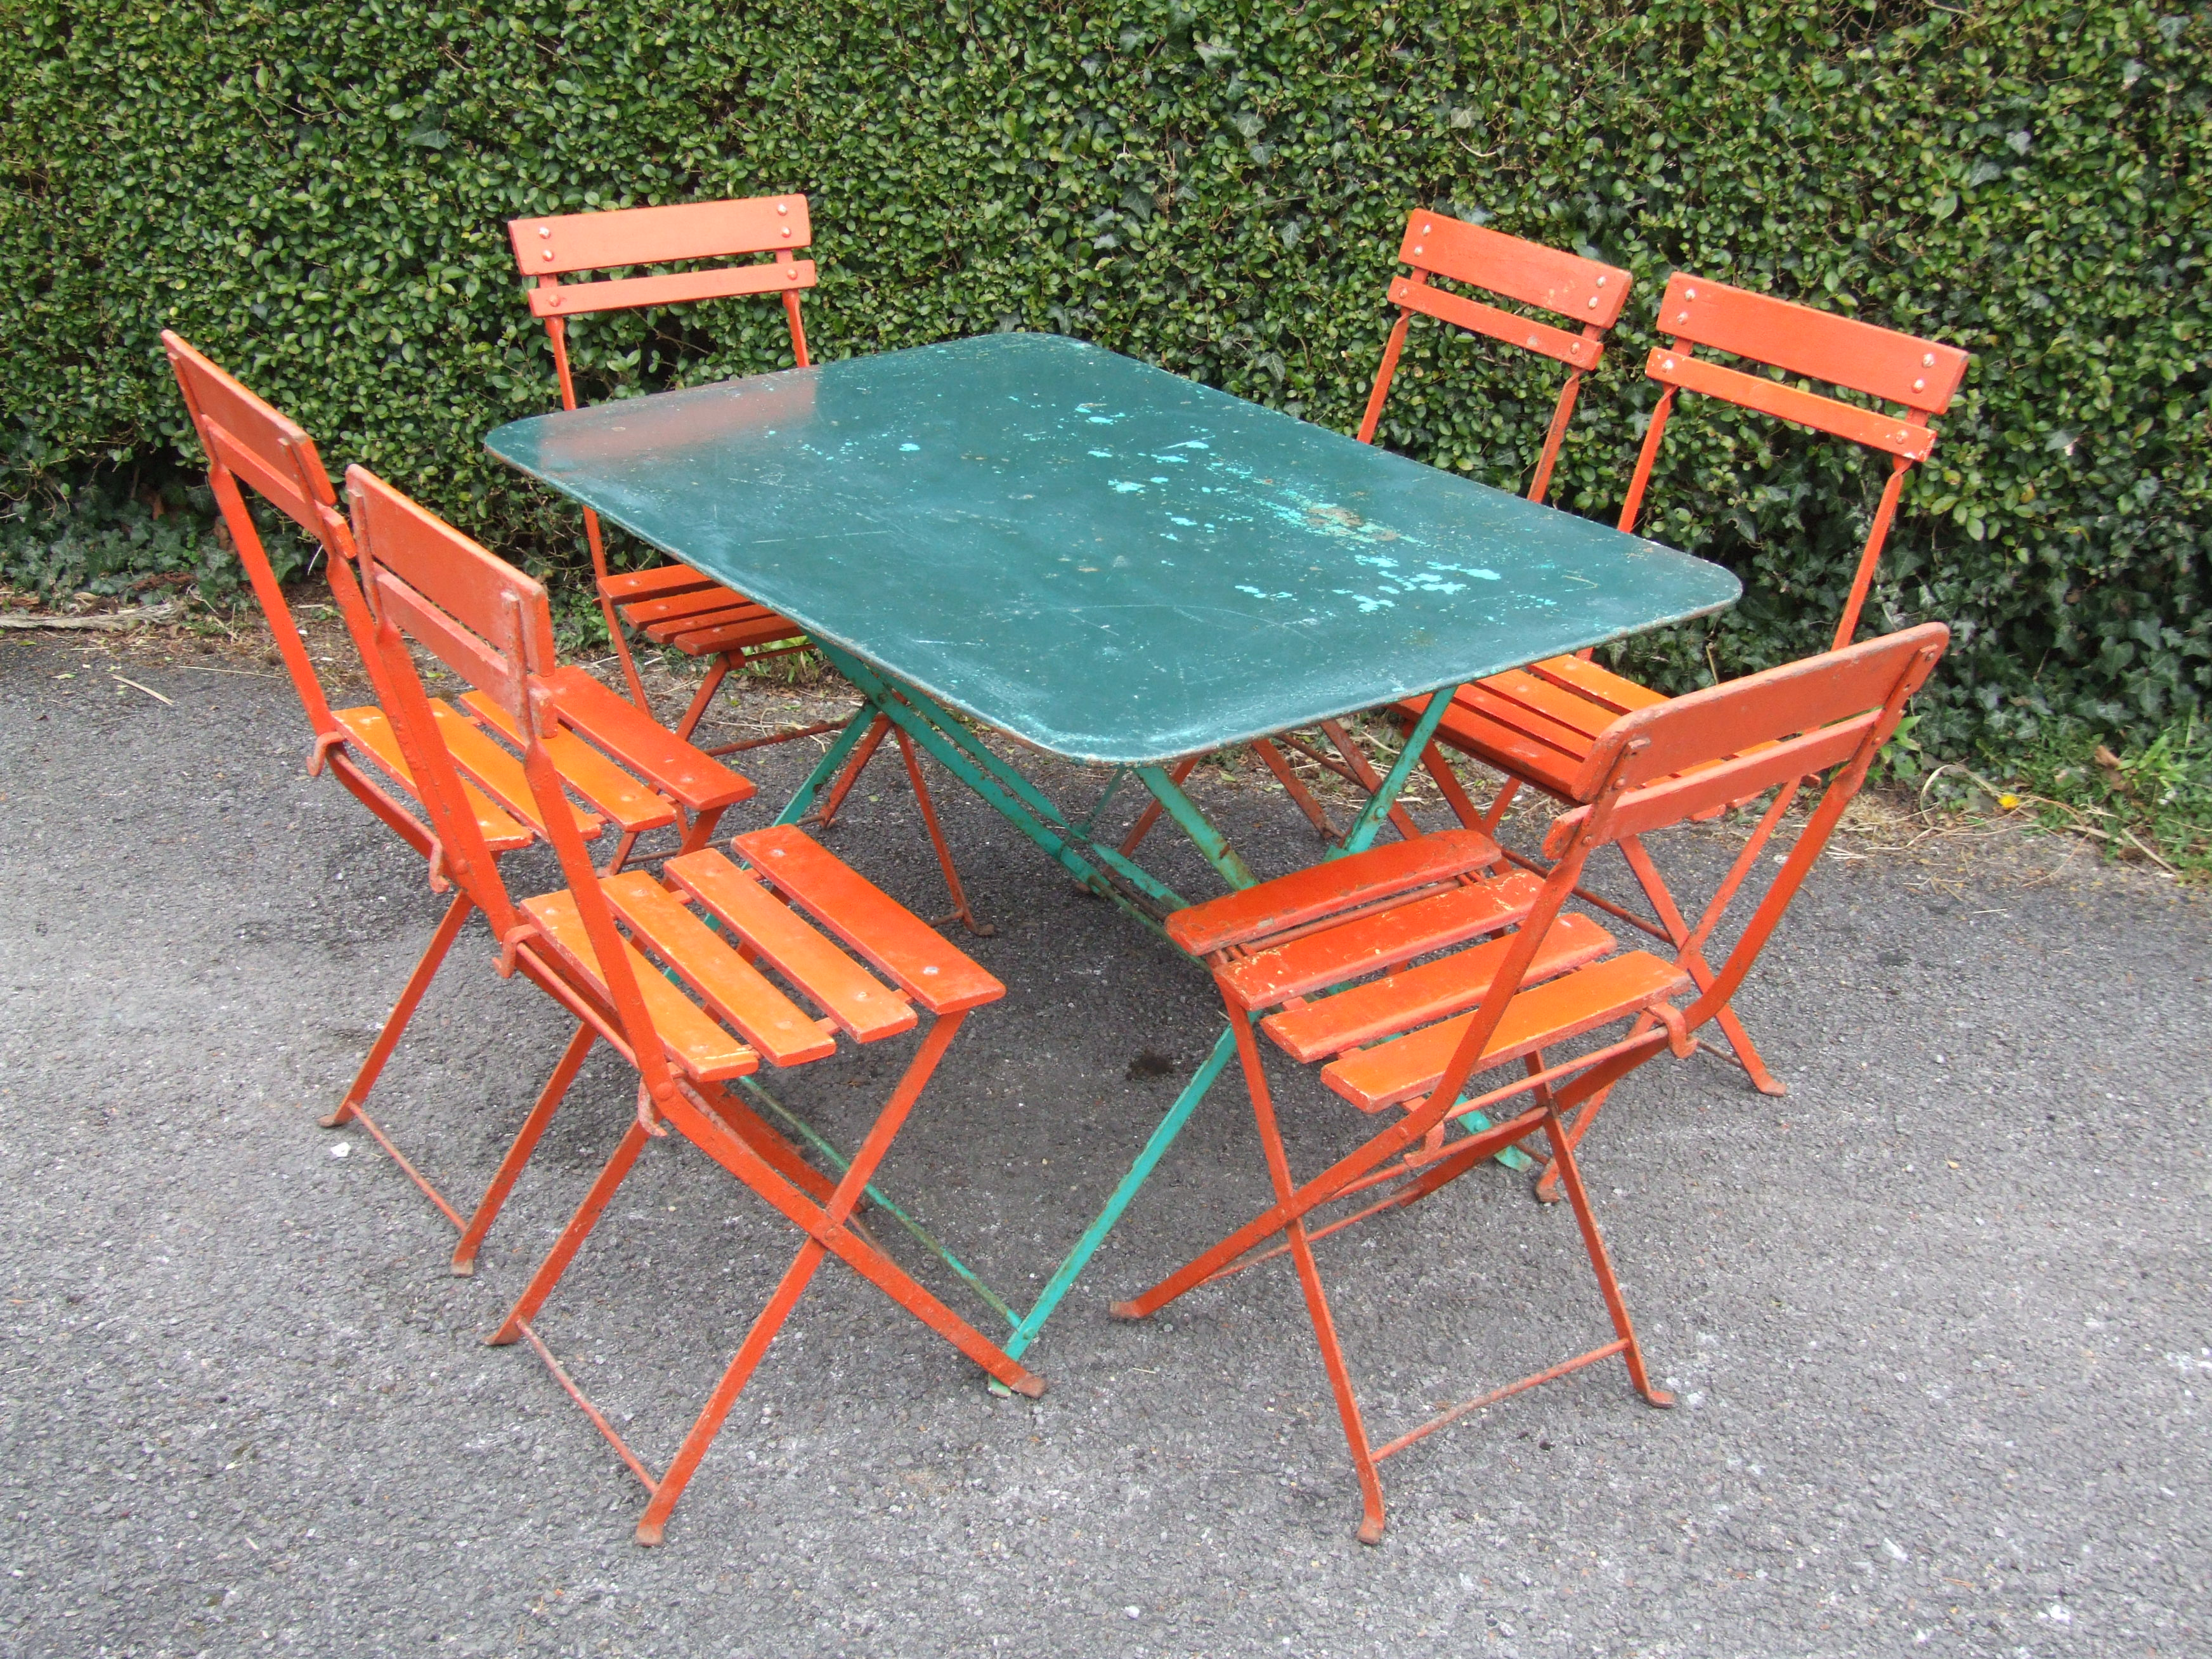 G214 s vintage french 6 seater folding metal garden caf patio table la belle toffe French metal garden furniture